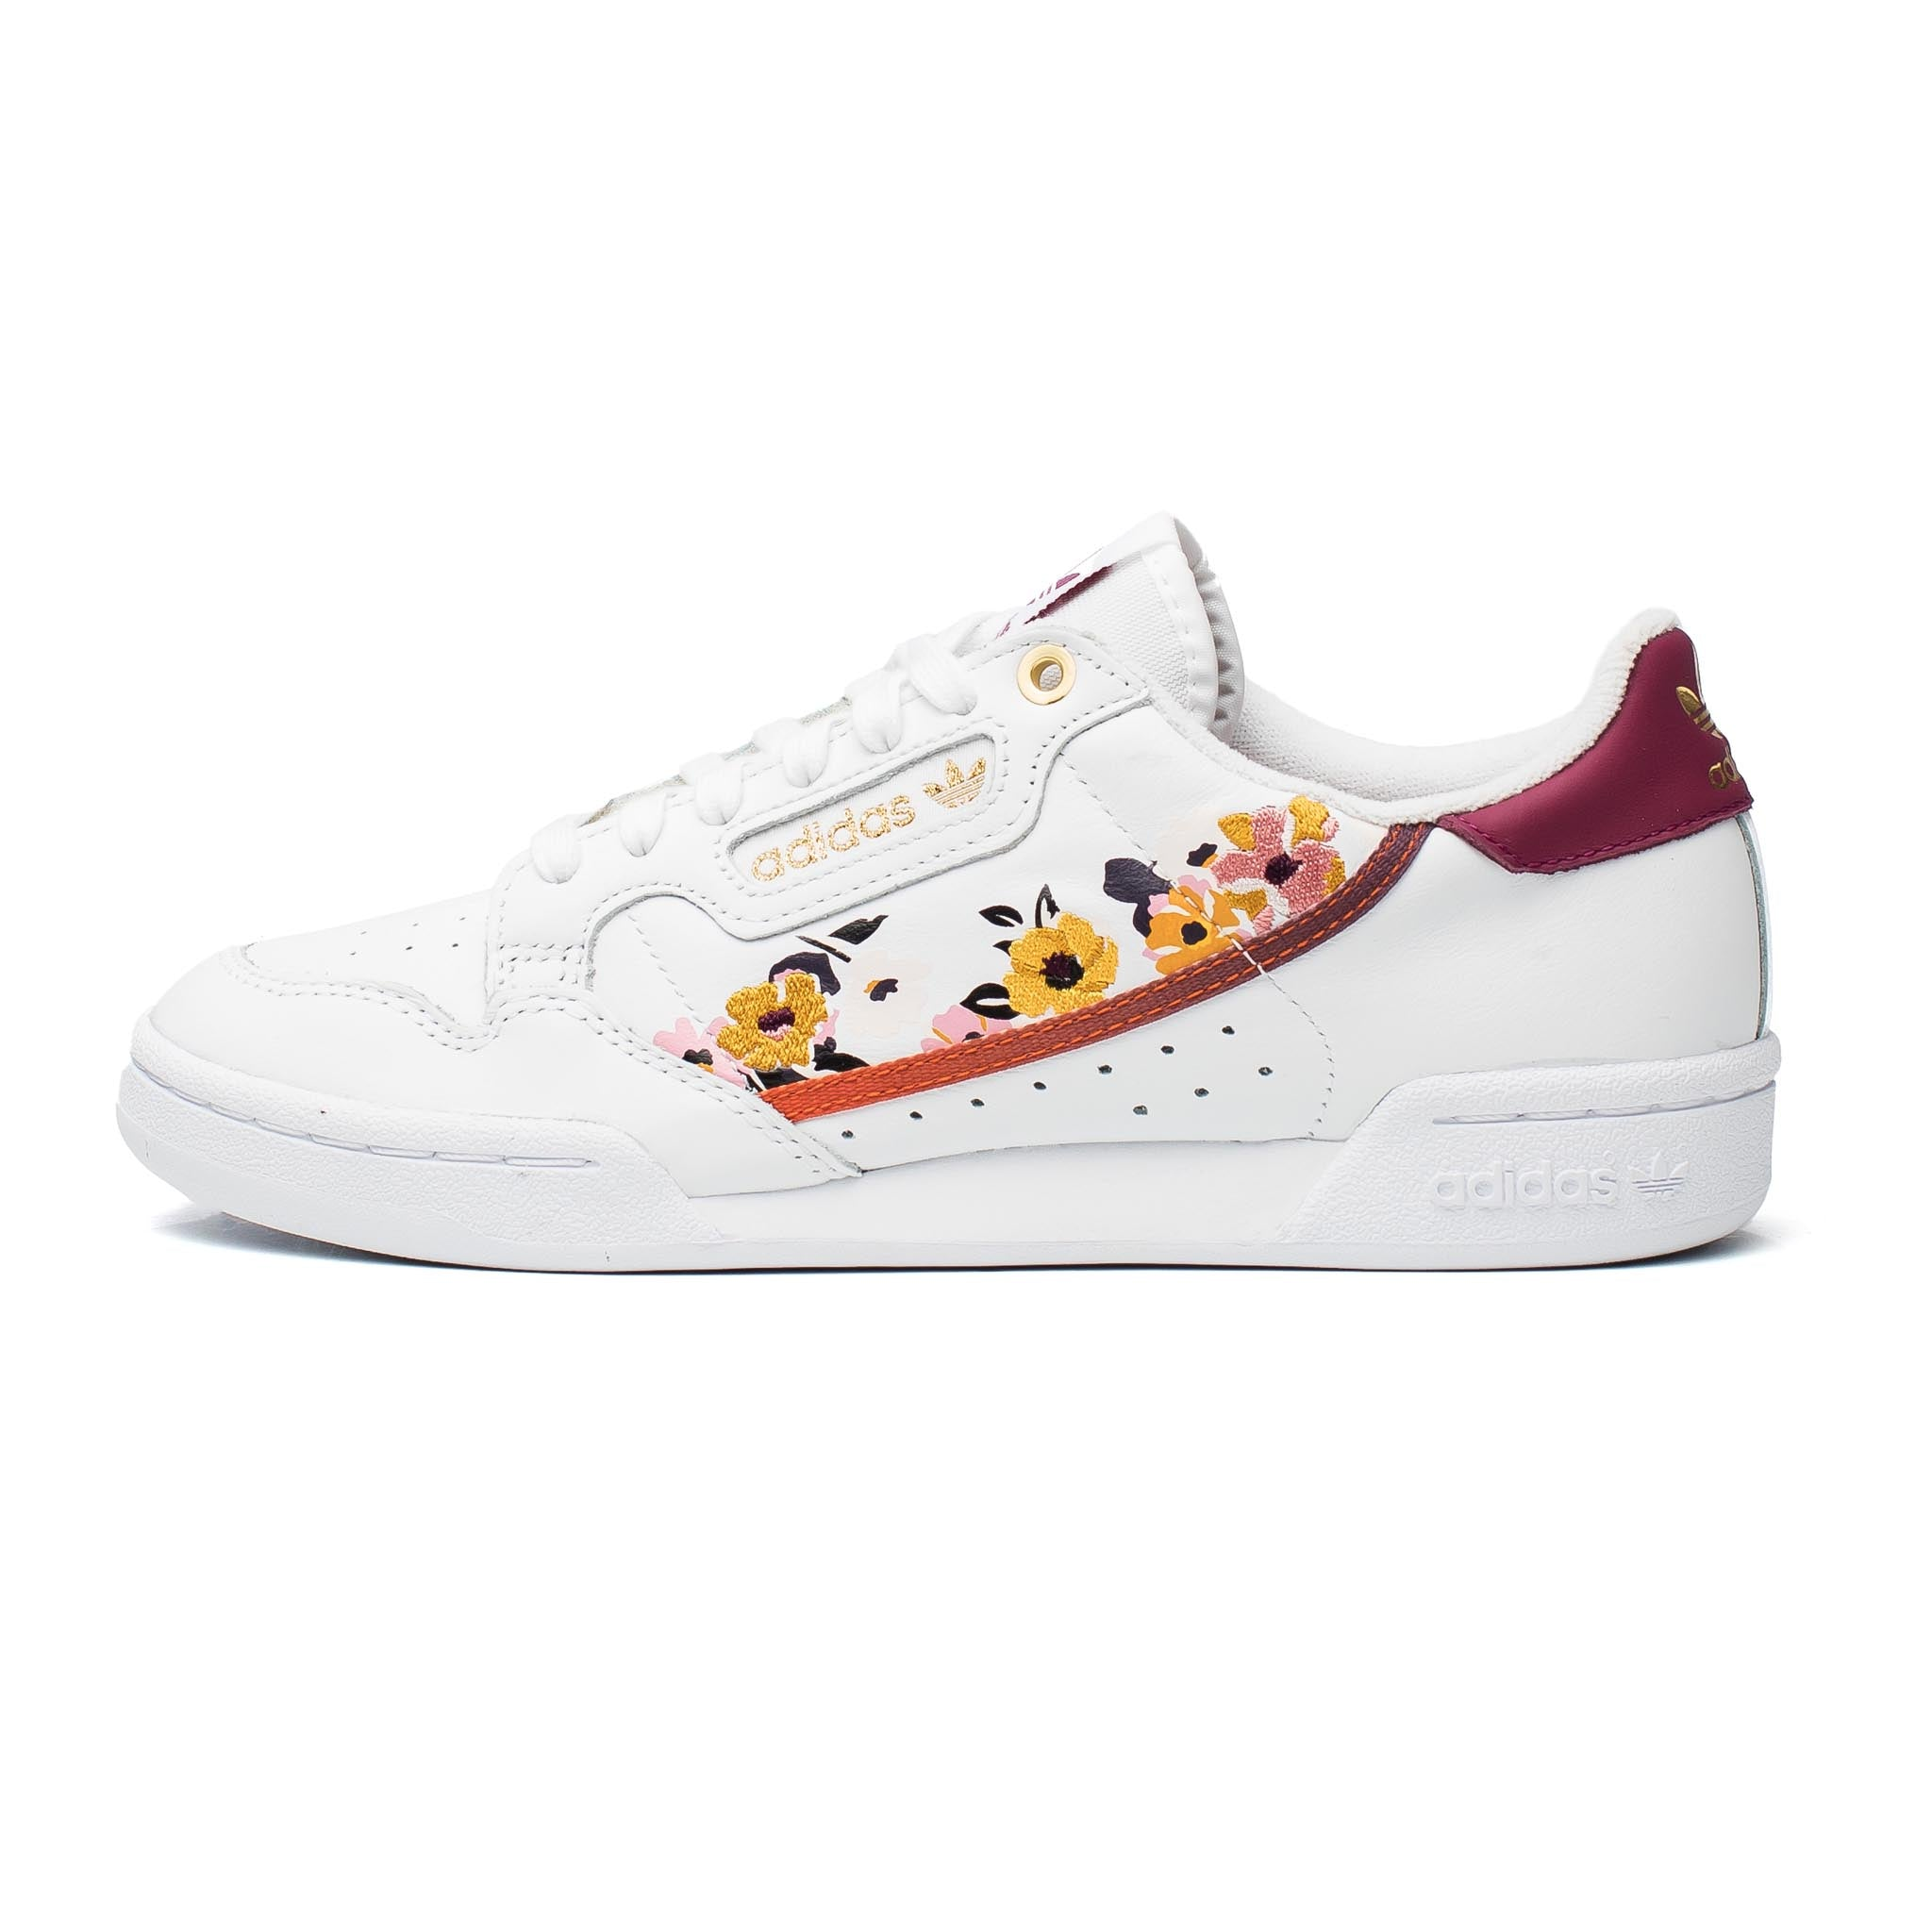 ADIDAS x HER Studio London Continental 80 Cloud White/Power Berry